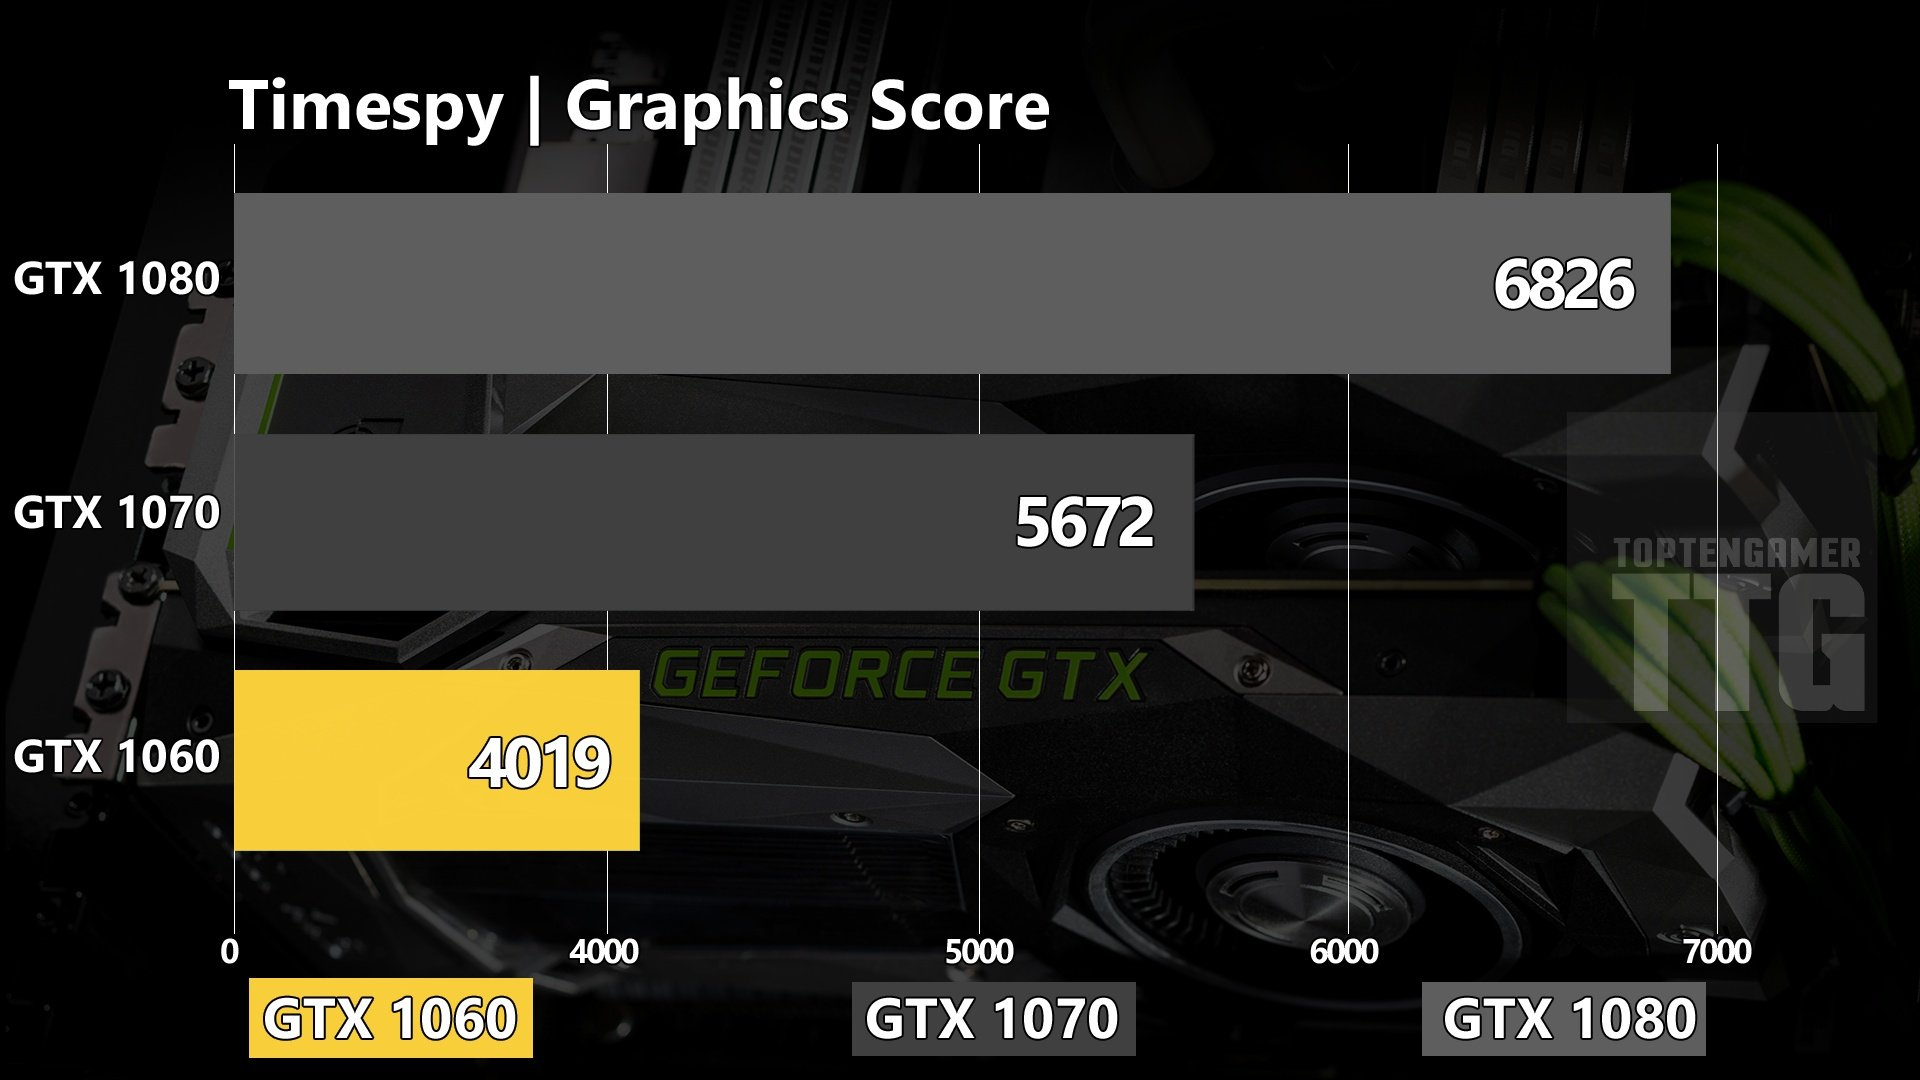 GTX 1080 vs 1070, 1060 GPU Benchmarks in 4k, 1440p, and 1080p - Top